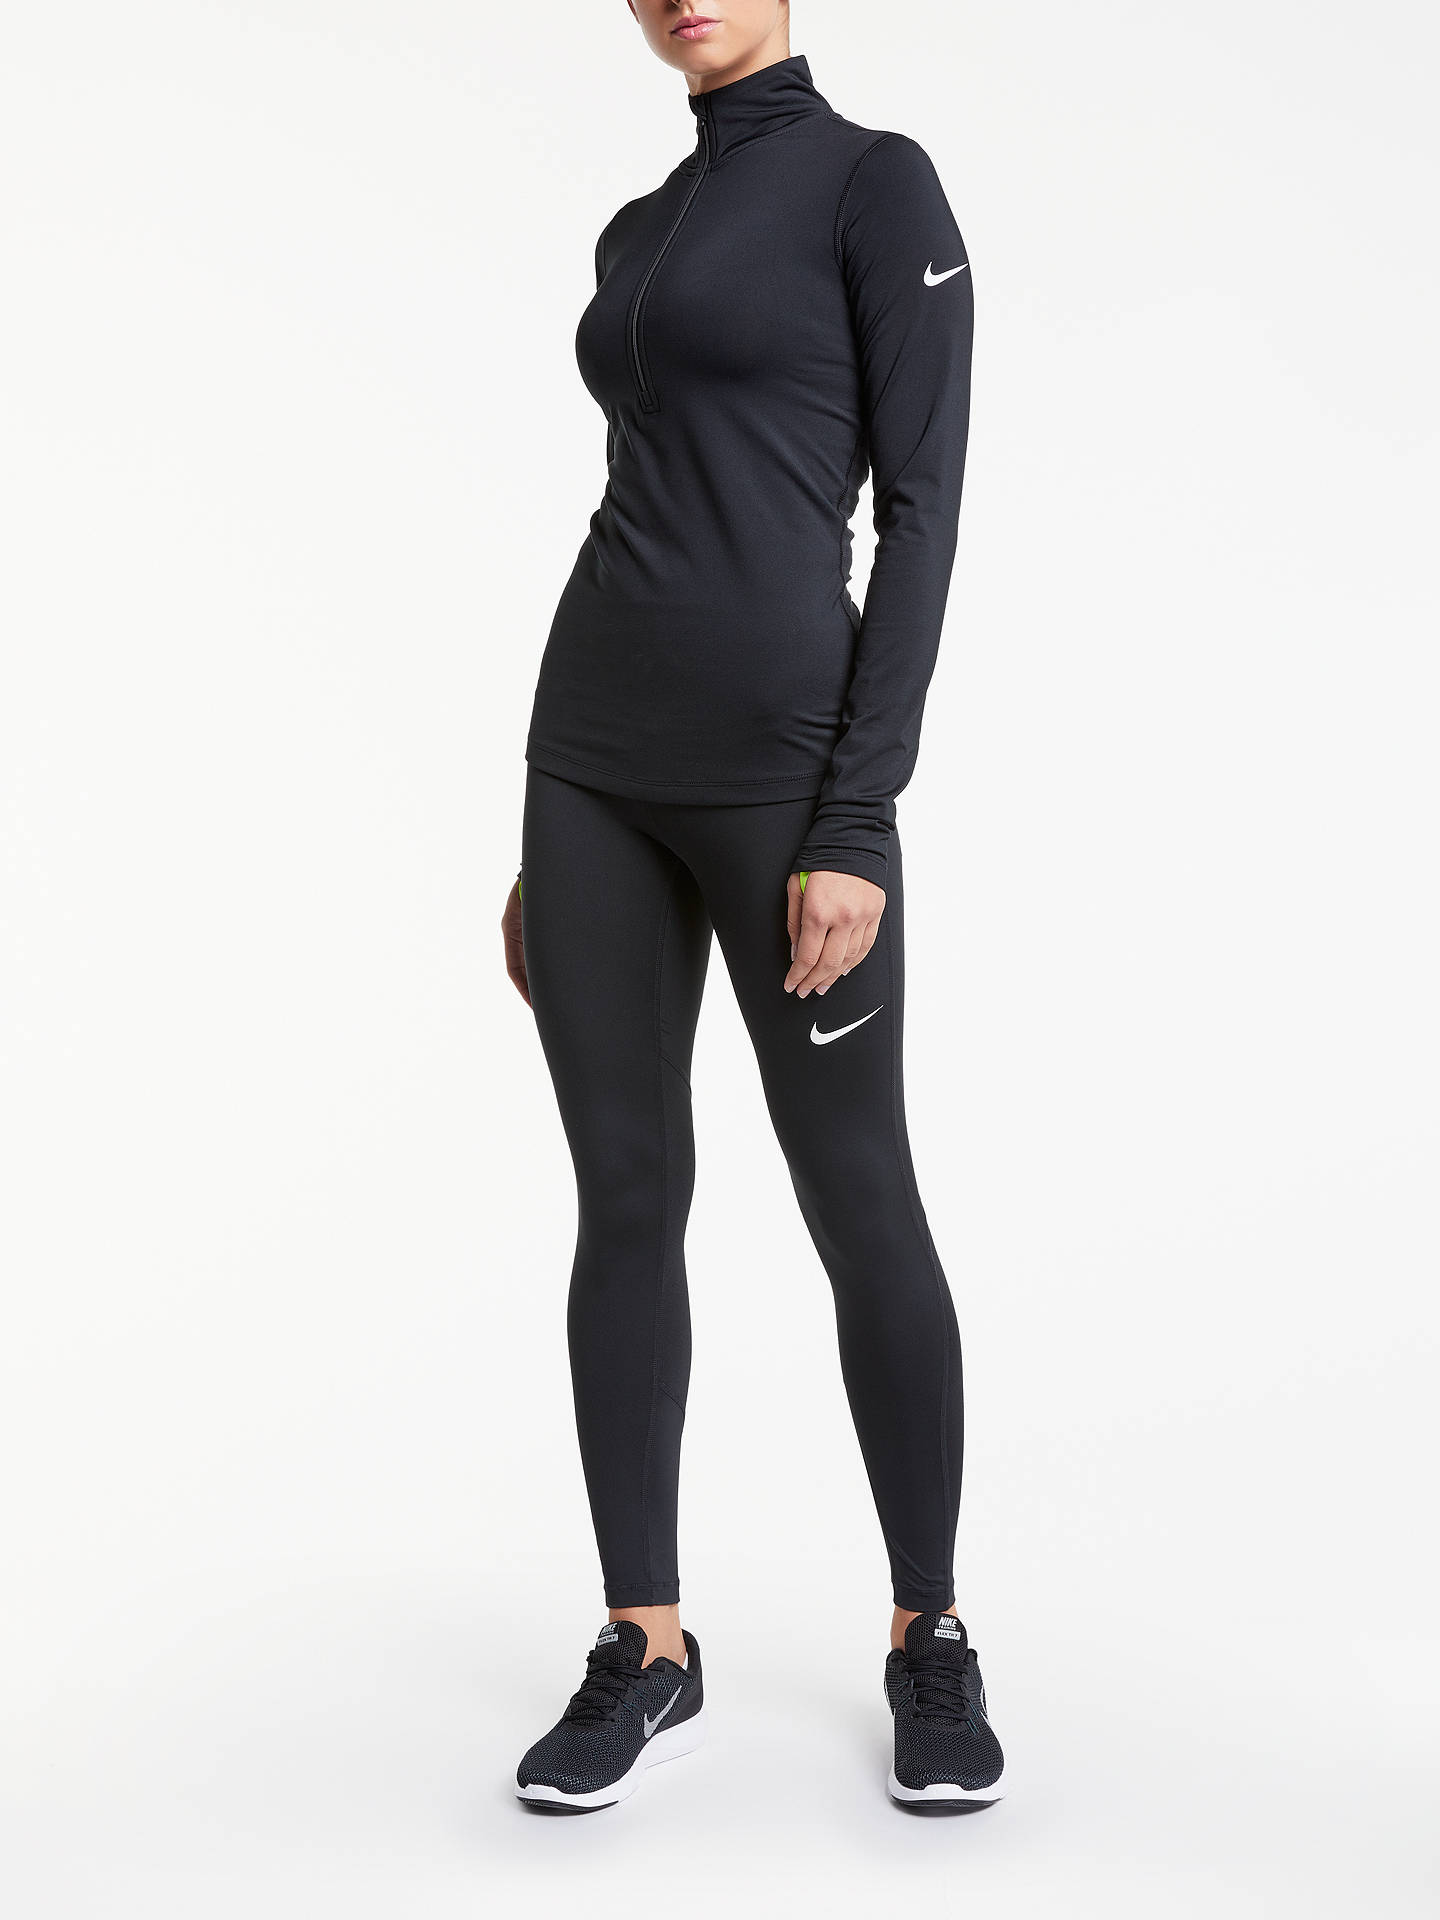 6c0f6085fcedb1 ... Buy Nike Pro Training Tights, Black/White, M Online at johnlewis.com ...